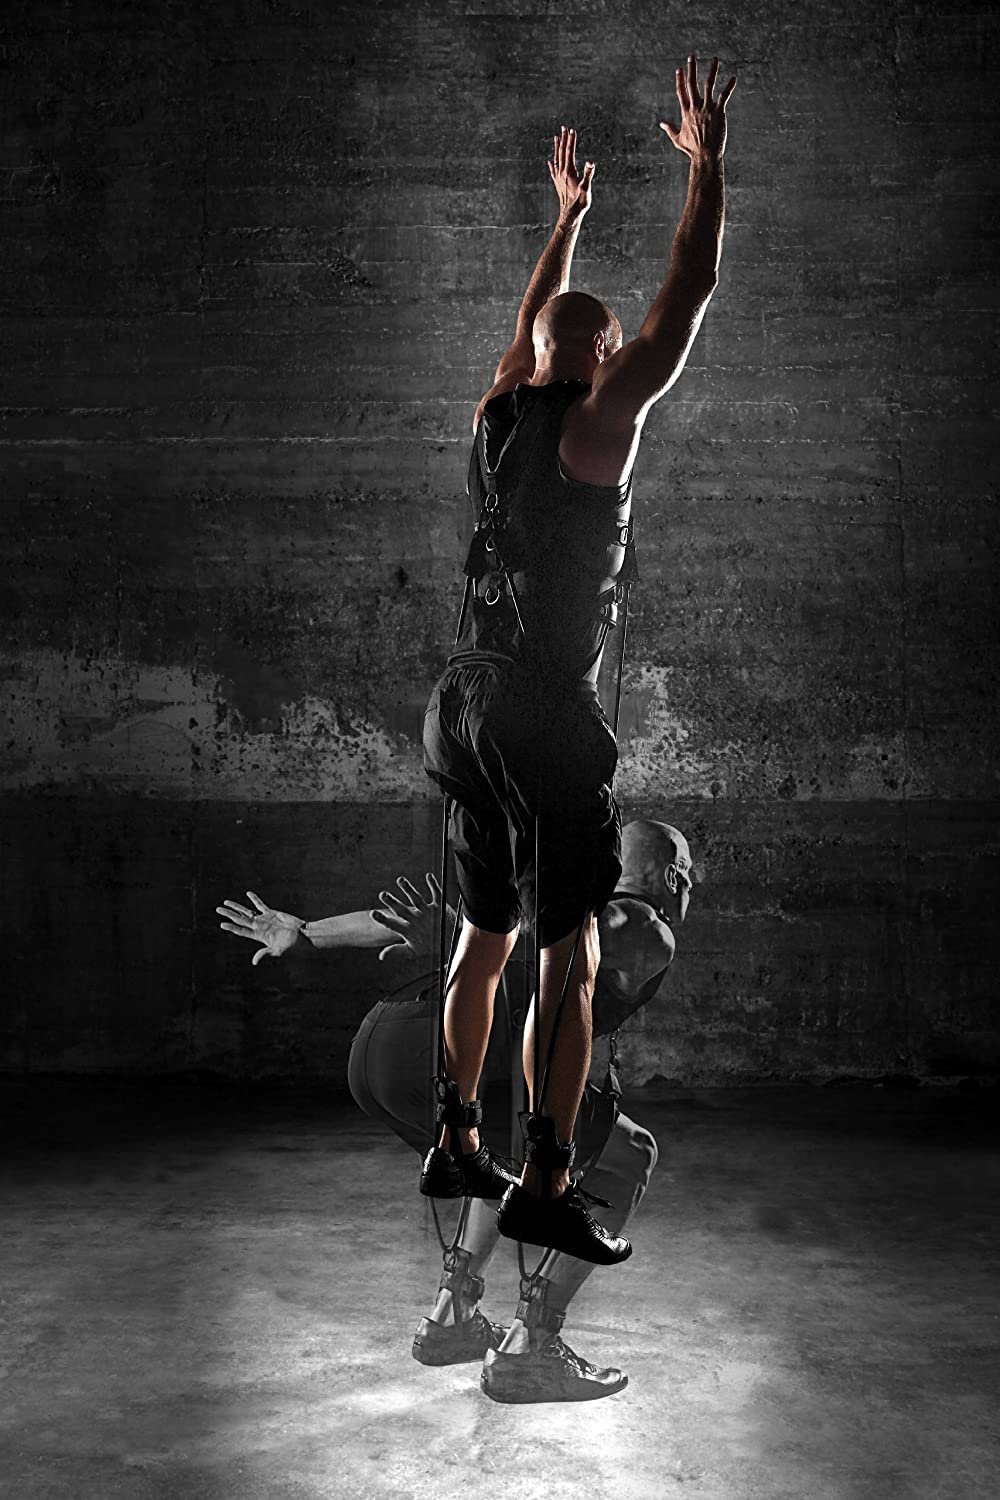 Get Going And Learn About Basketball Here 91pWacN1zWL._SL1500_